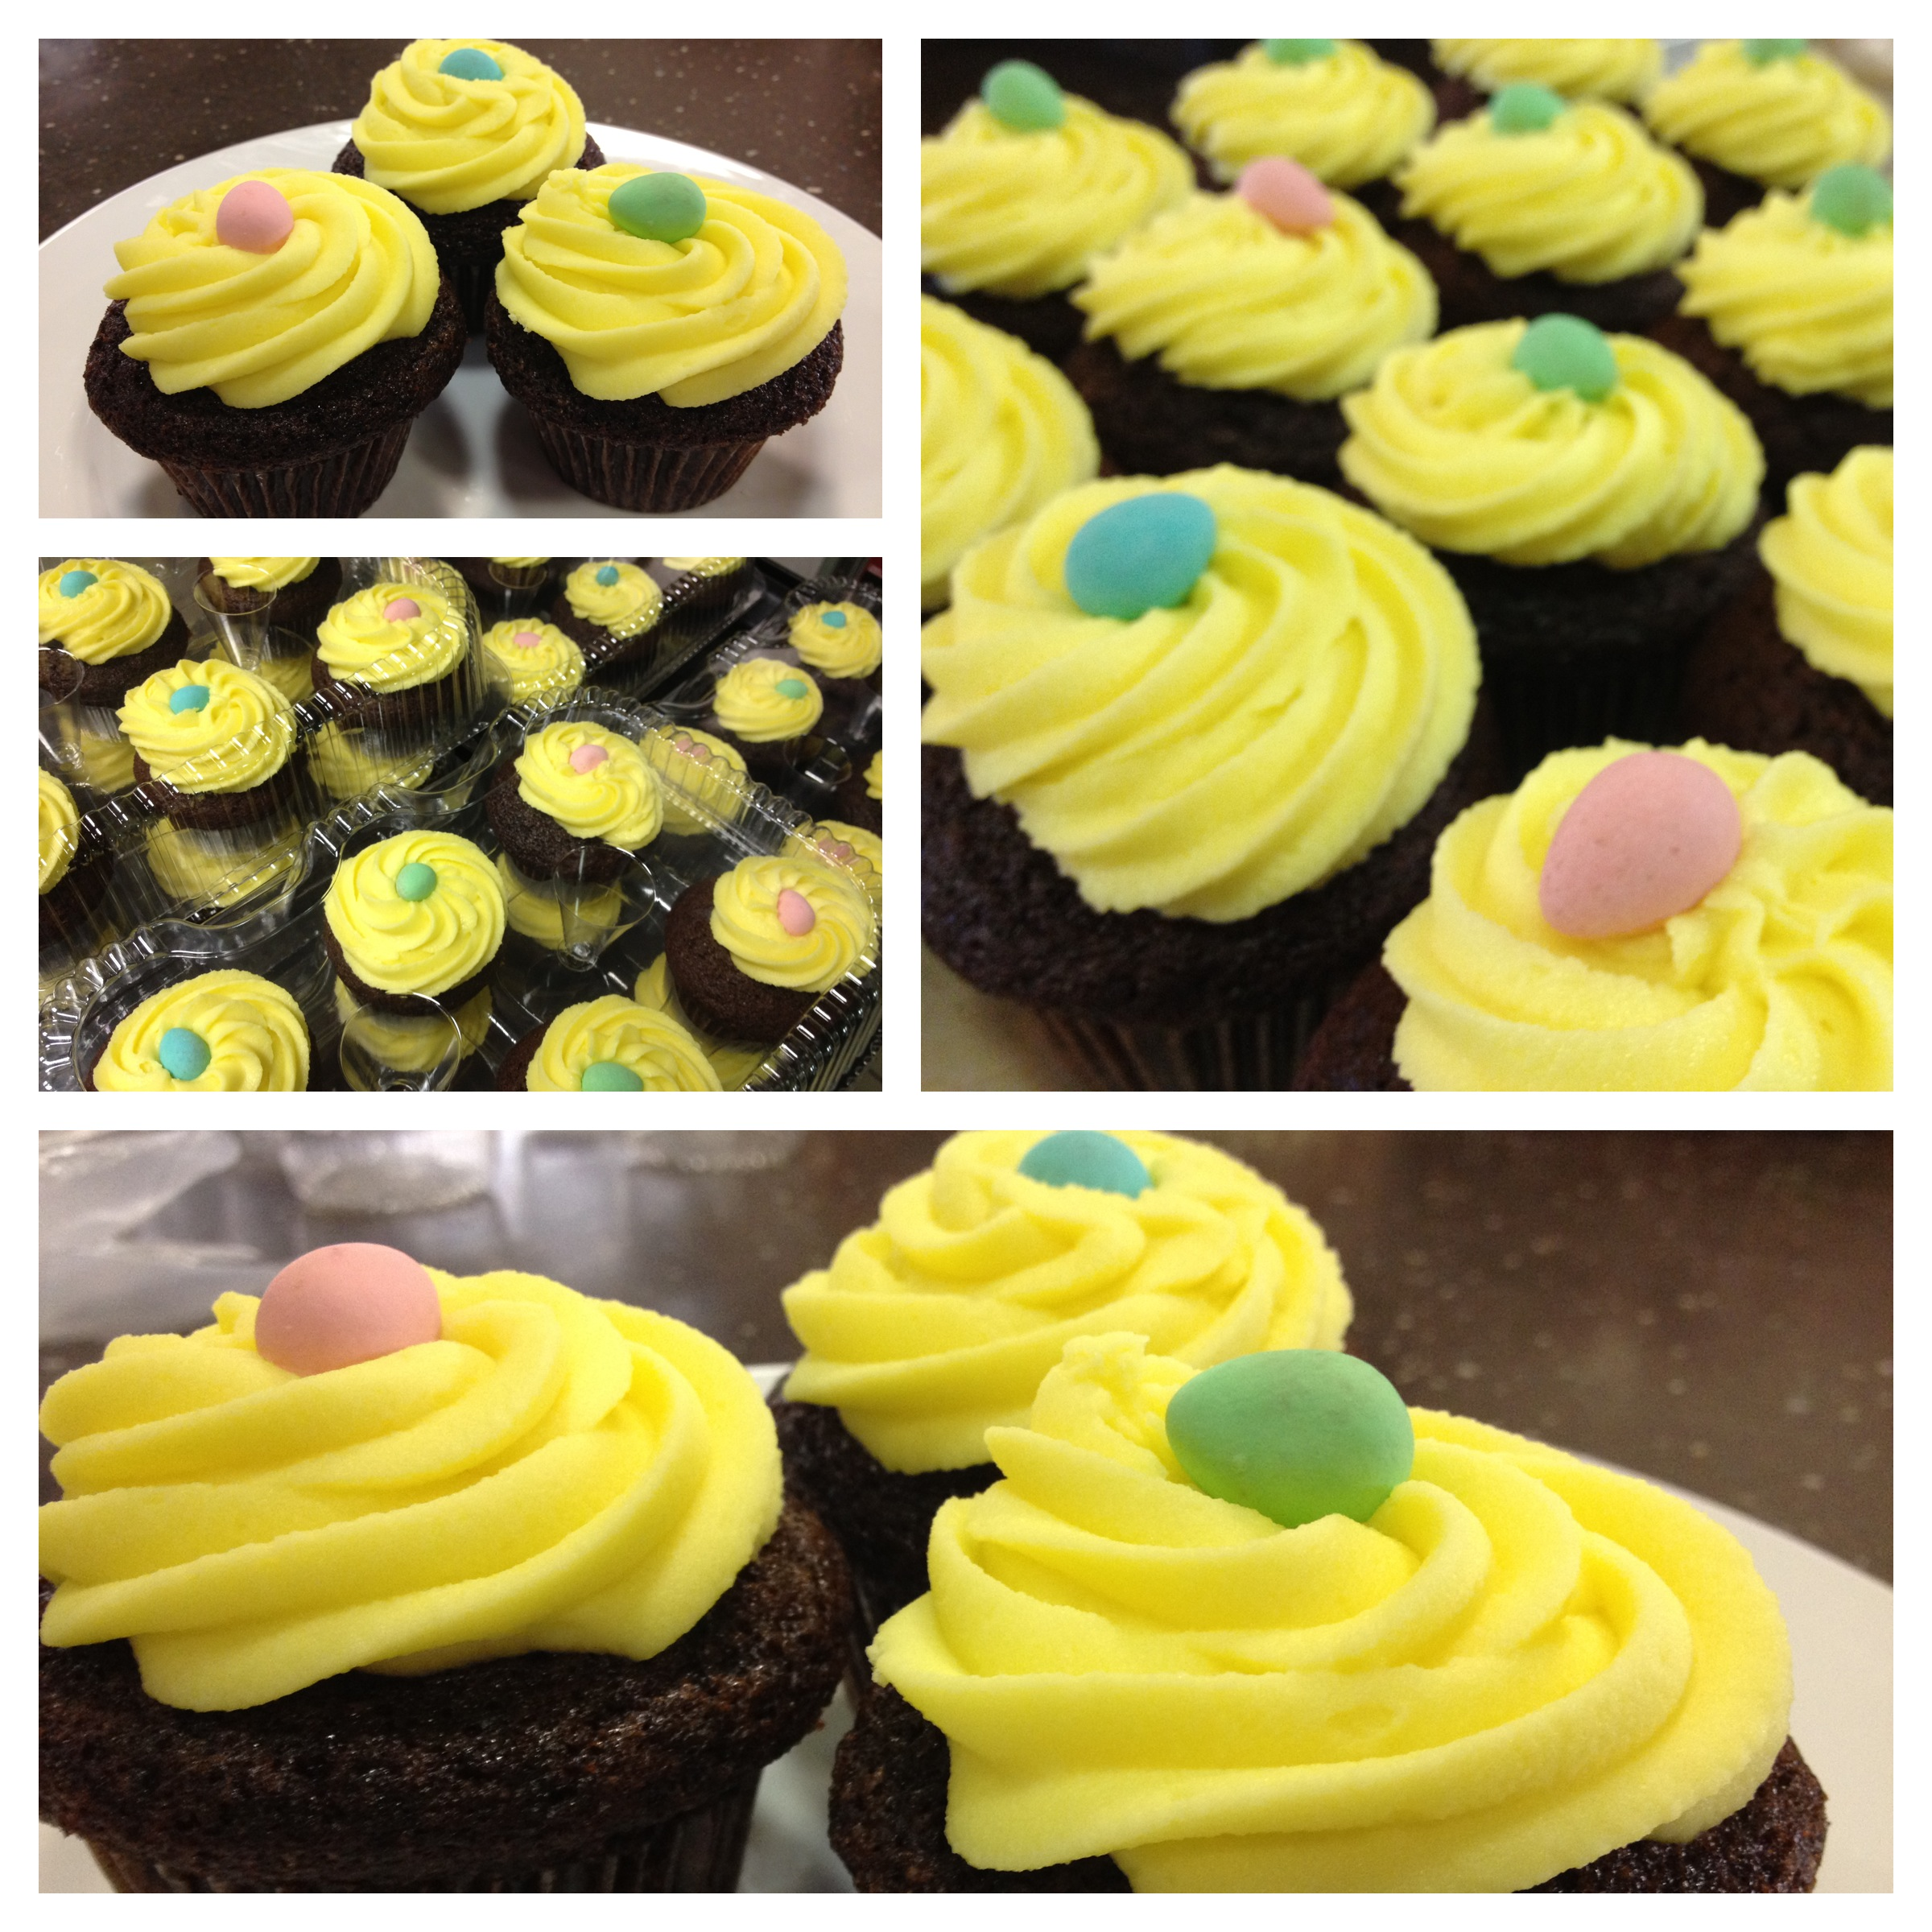 Take Five Cafe Easter Cupcake | Take Five Cafe